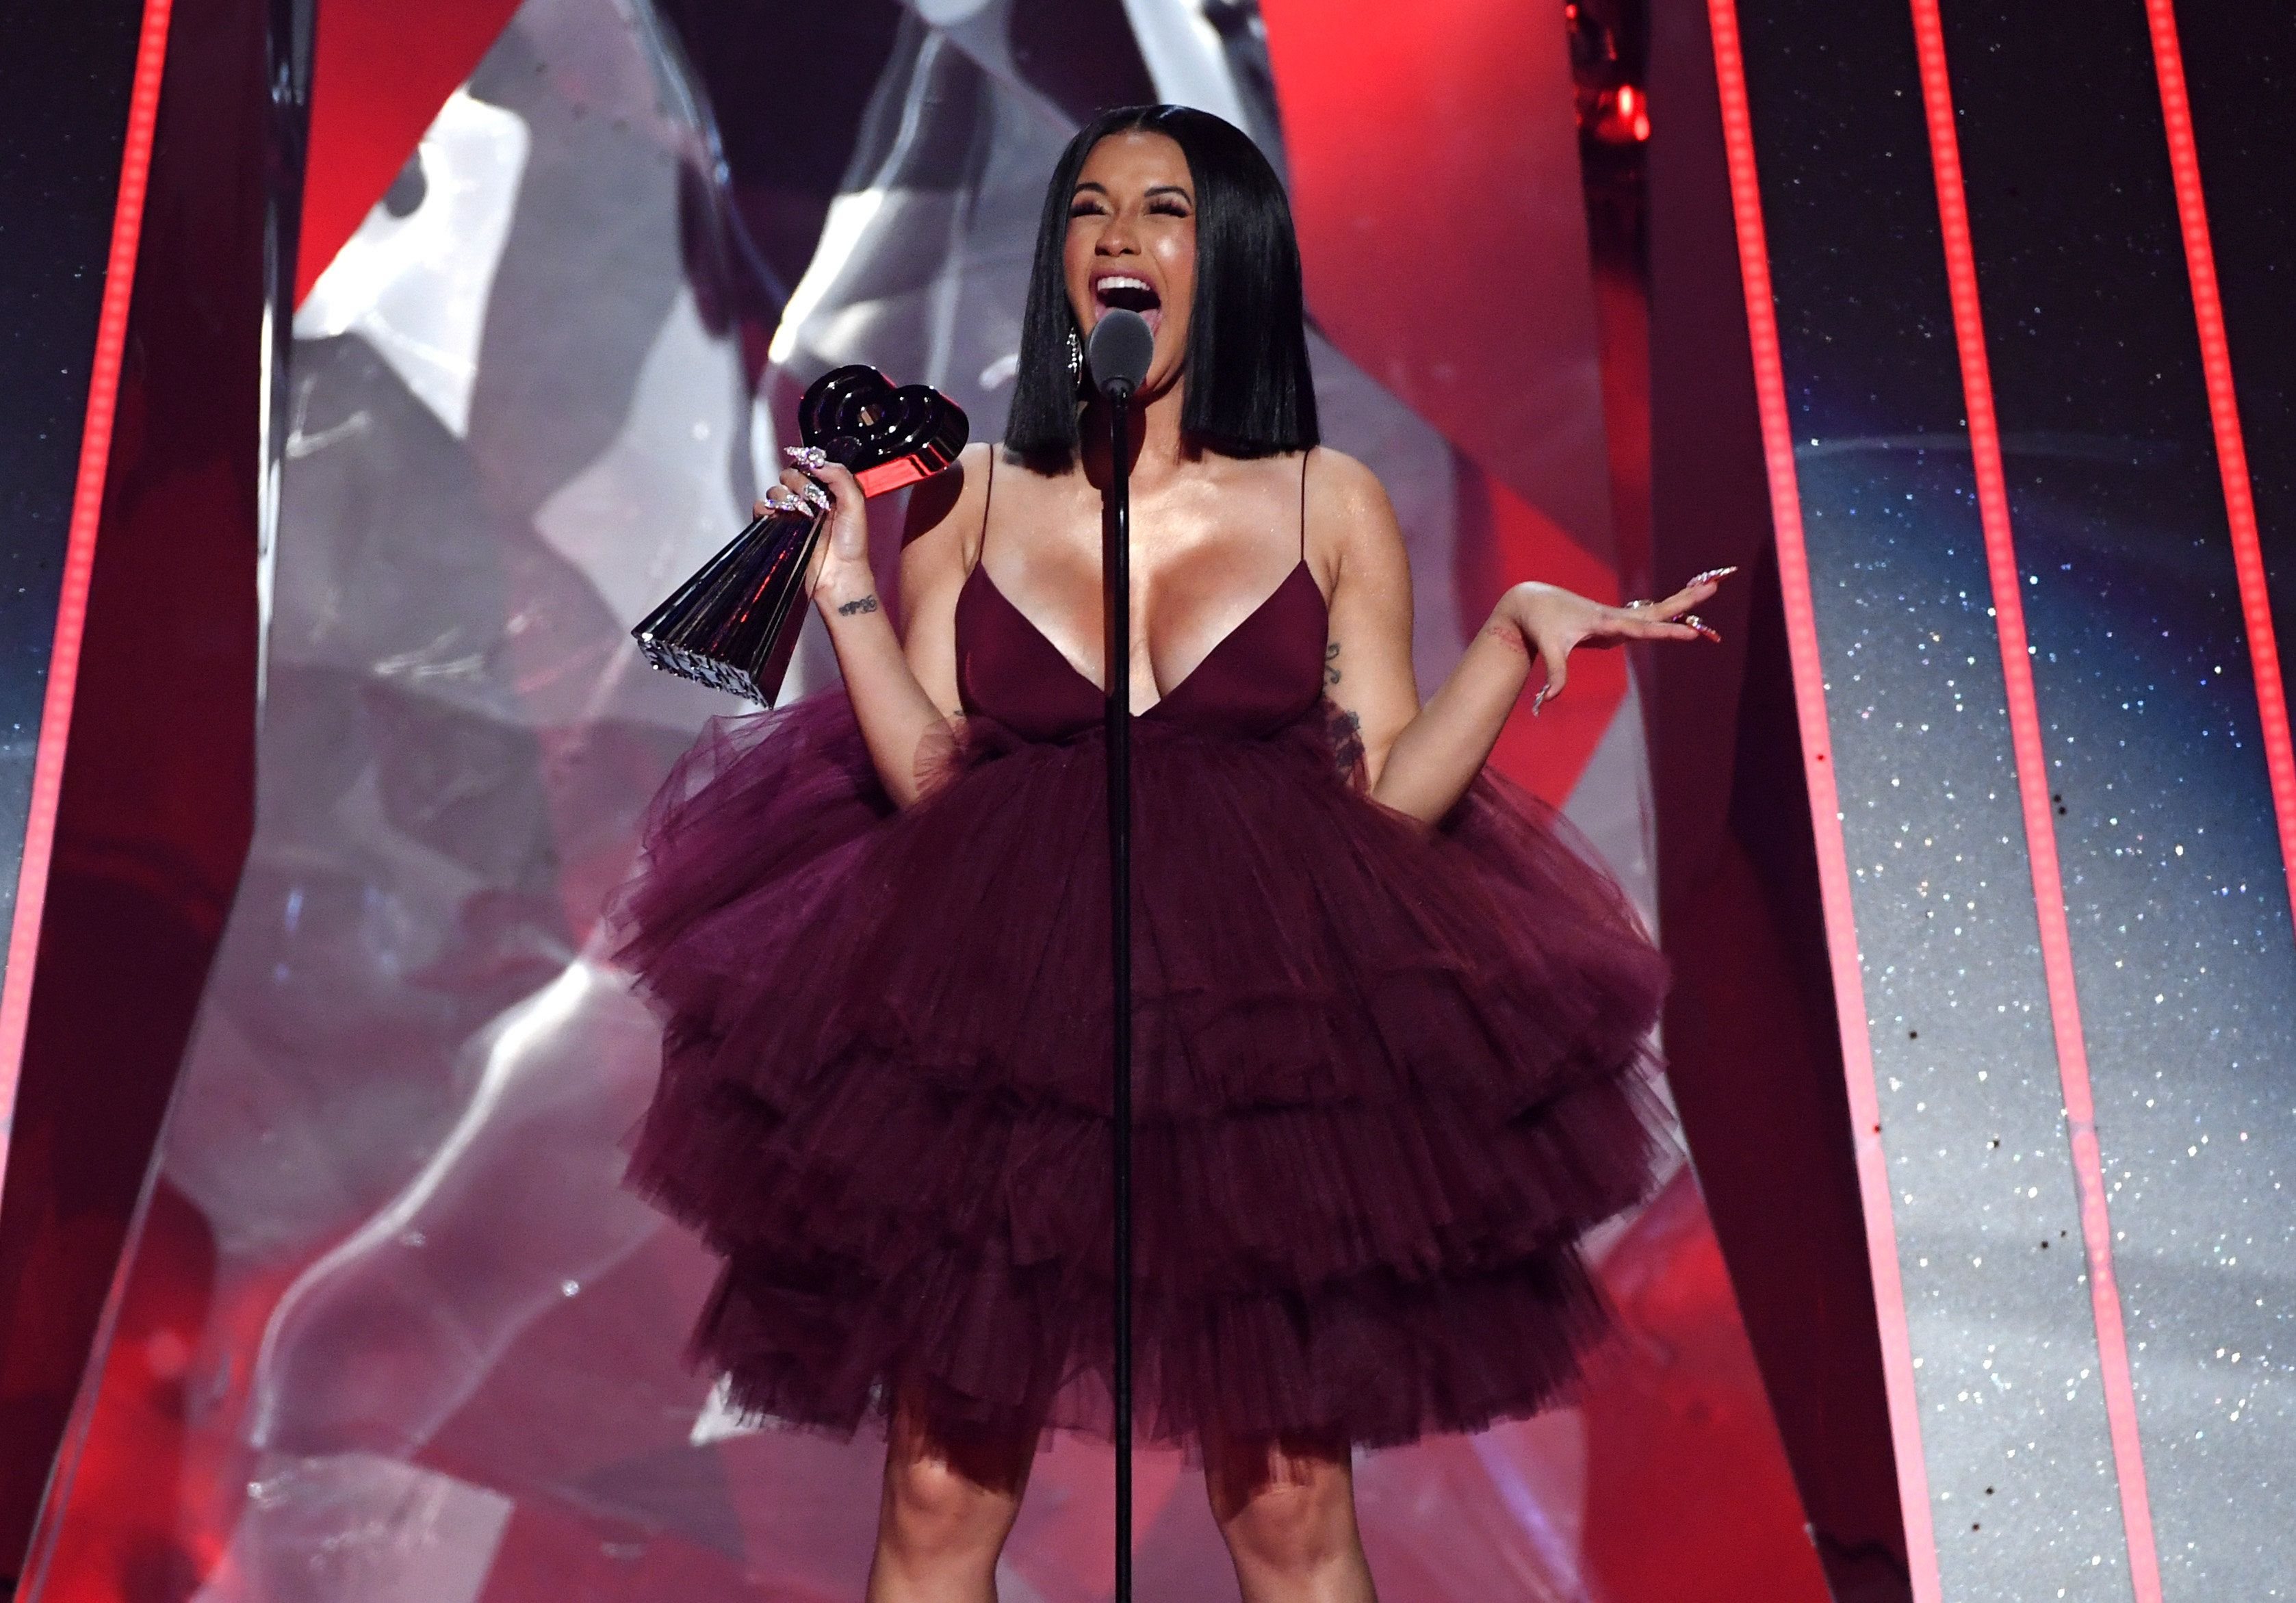 INGLEWOOD, CA - MARCH 11:  Cardi B accepts Best New Artist onstage during the 2018 iHeartRadio Music Awards which broadcasted live on TBS, TNT, and truTV at The Forum on March 11, 2018 in Inglewood, California.  (Photo by Kevin Winter/Getty Images for iHeartMedia)